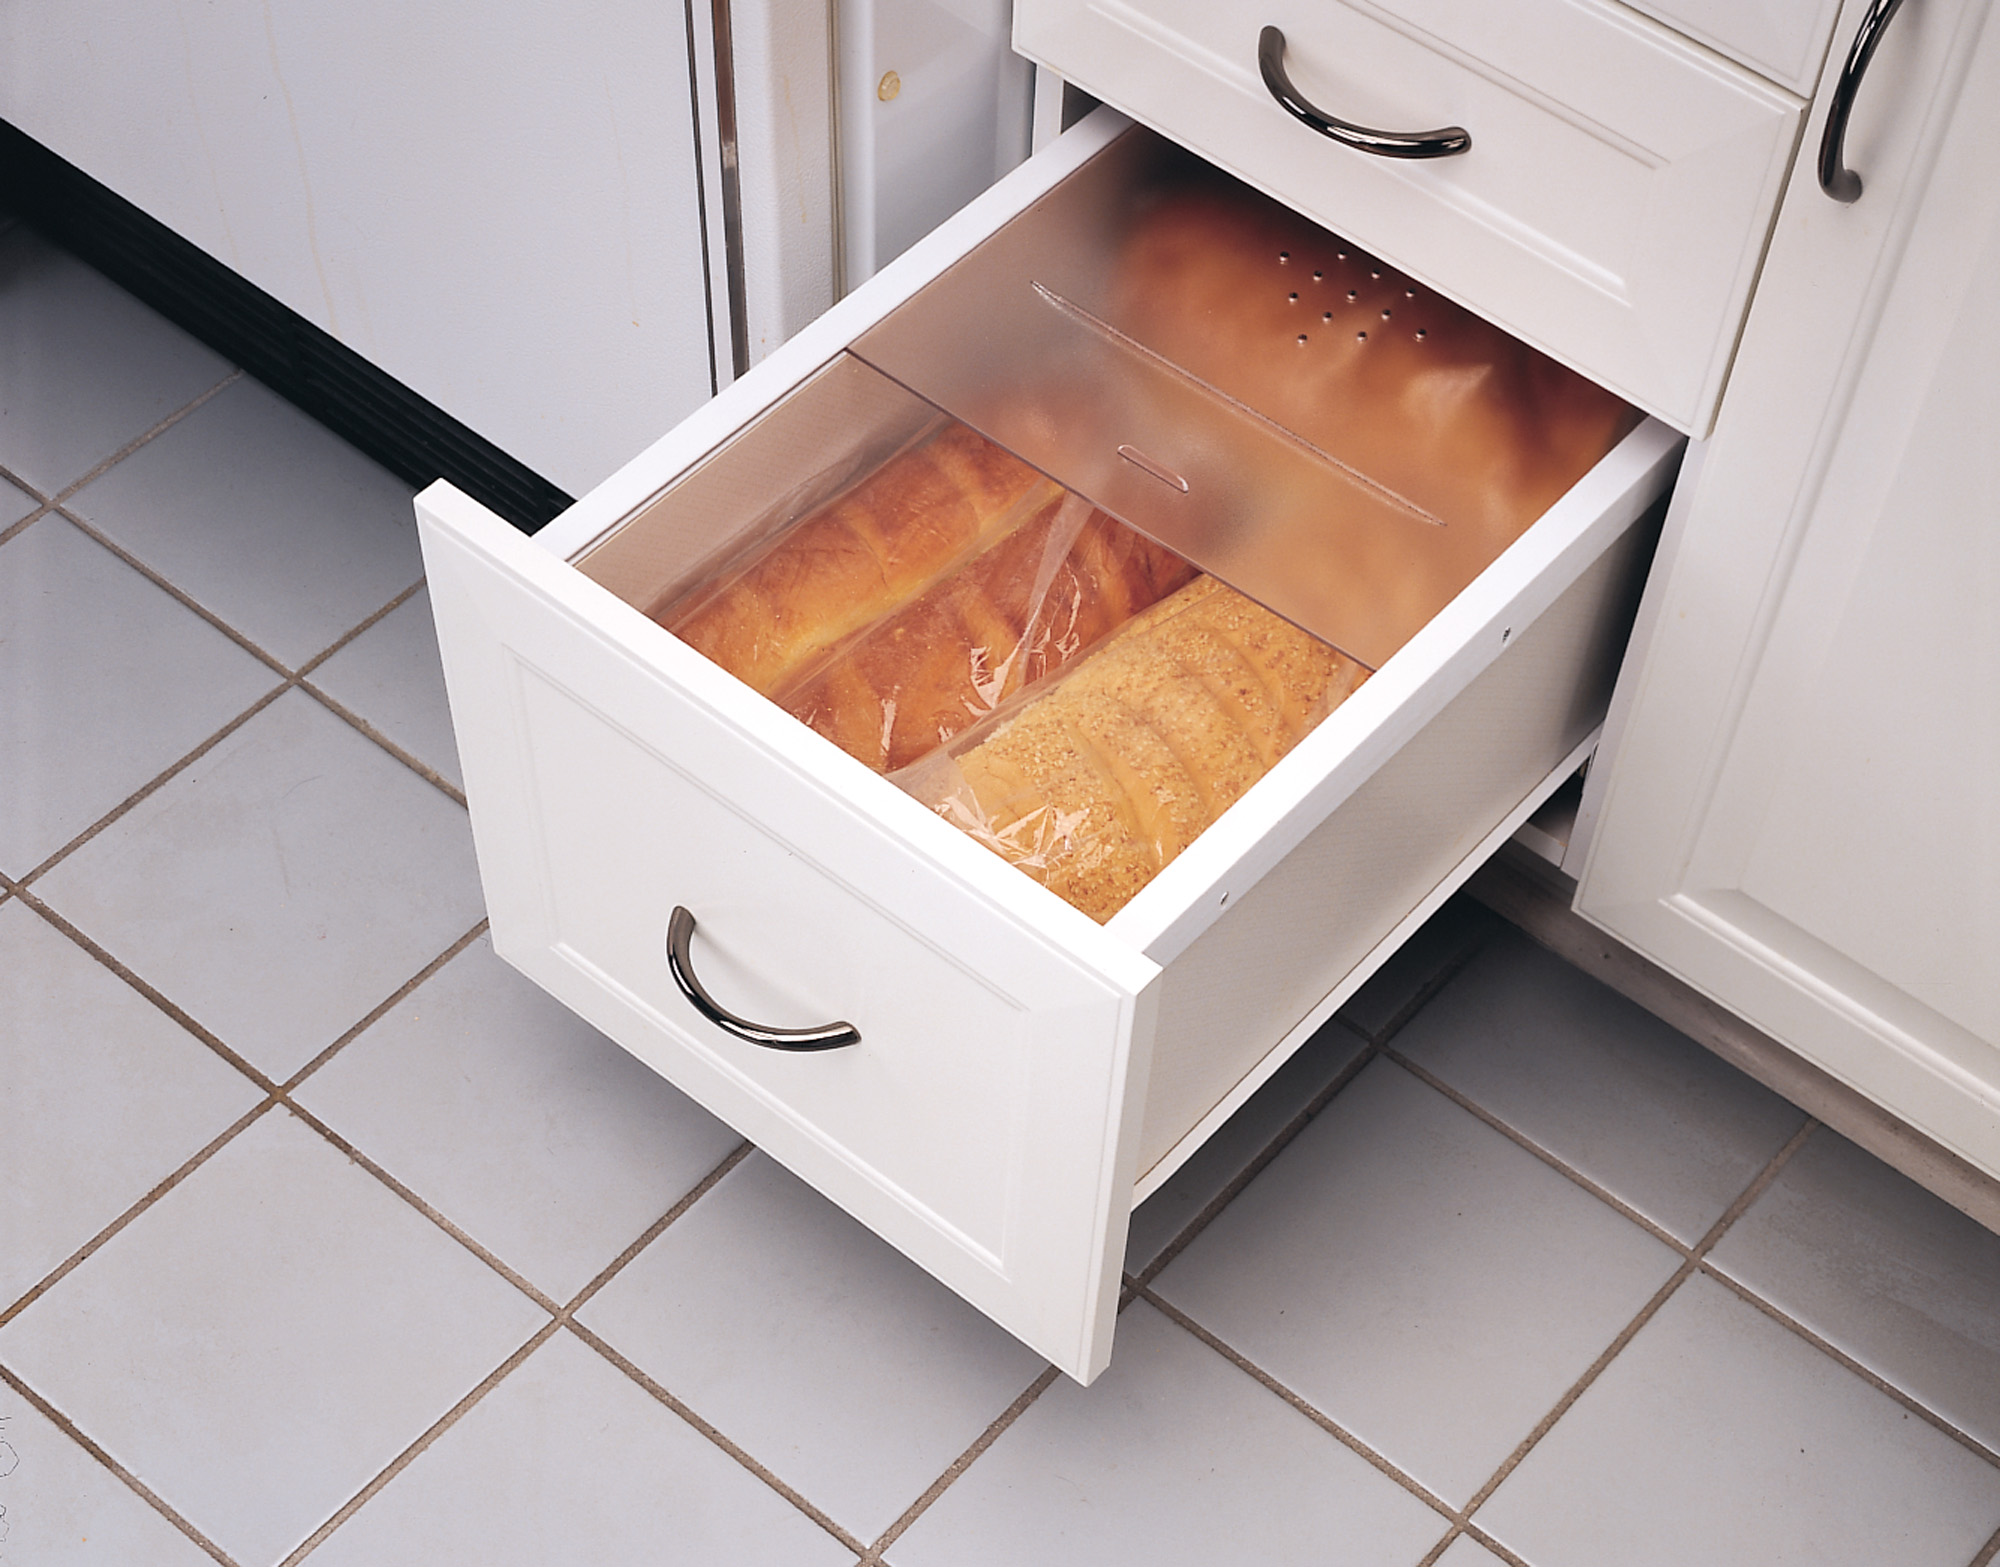 Rev-A-Shelf Large Translucent Bread Drawer Cover Kit